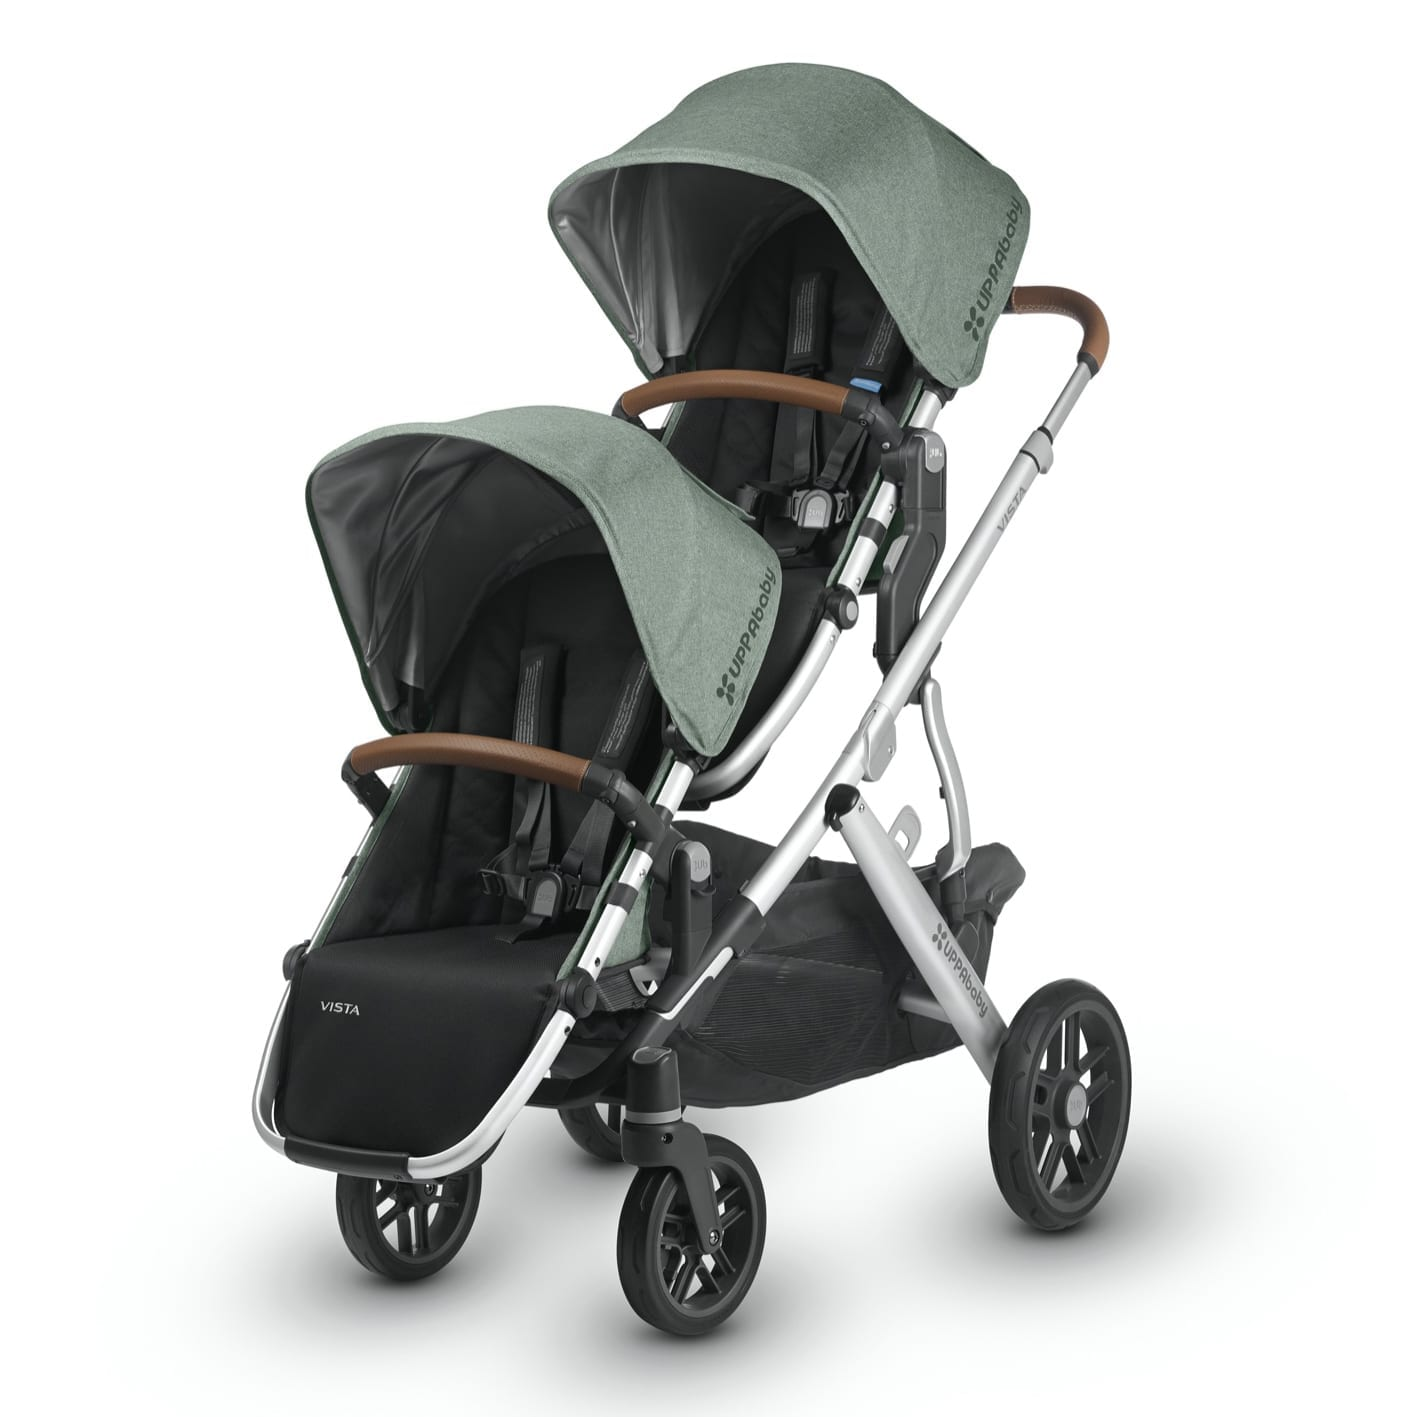 UPPABaby VISTA 2 Rumble Seat 2 – EMMETT product image